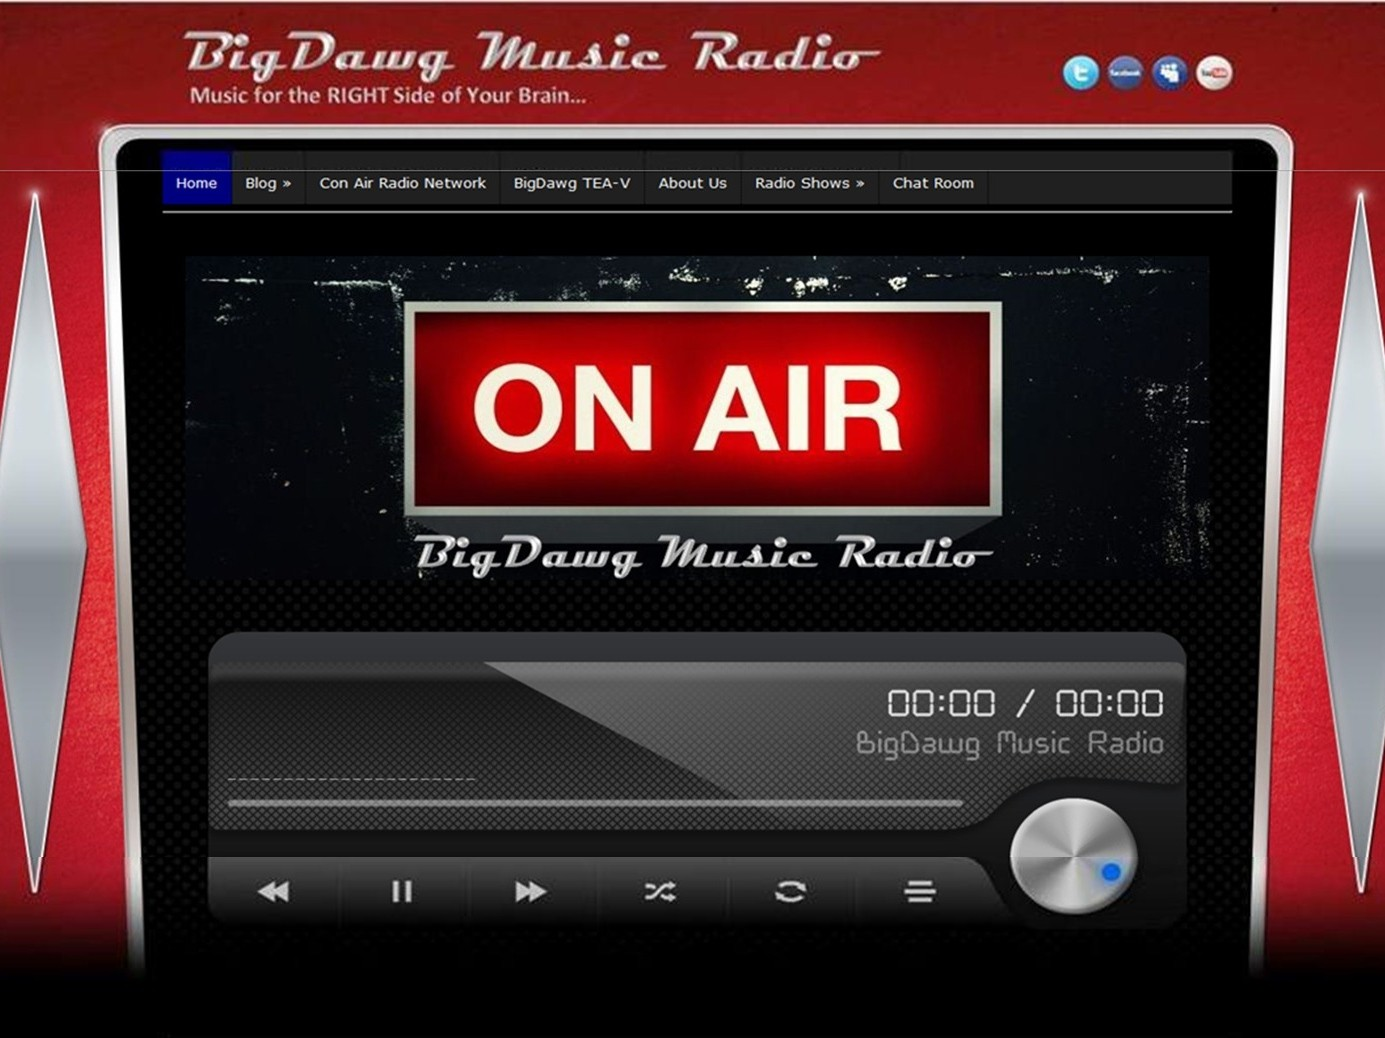 BigDawg Radio to Offer 24/7 Conservative Music